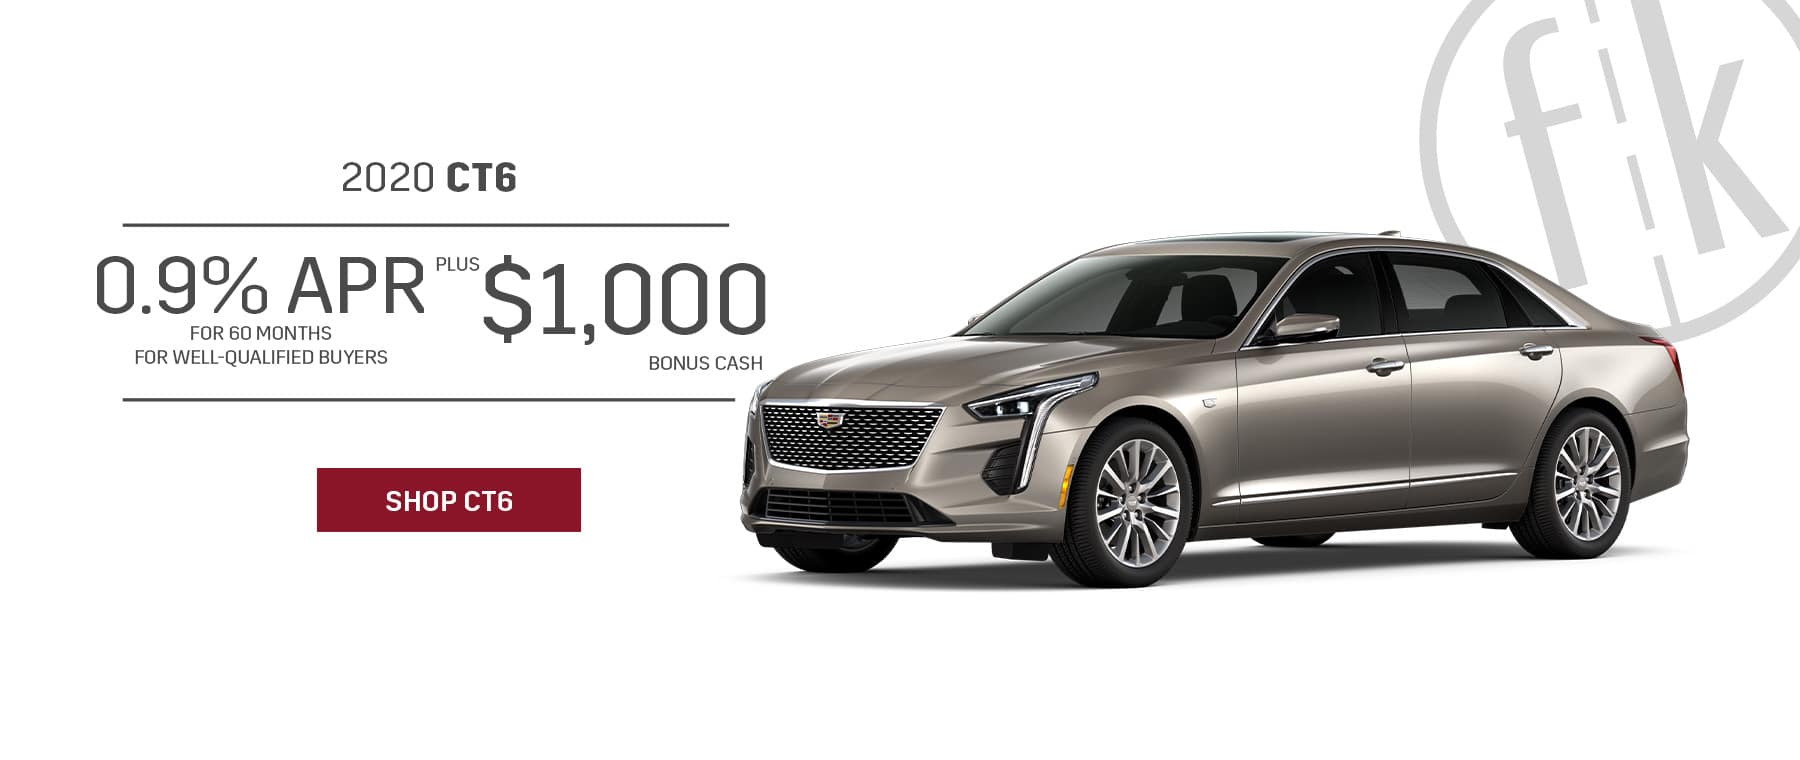 2020 CT6 0.9% for 60 mos. -PLUS- $1,000 Bonus Cash